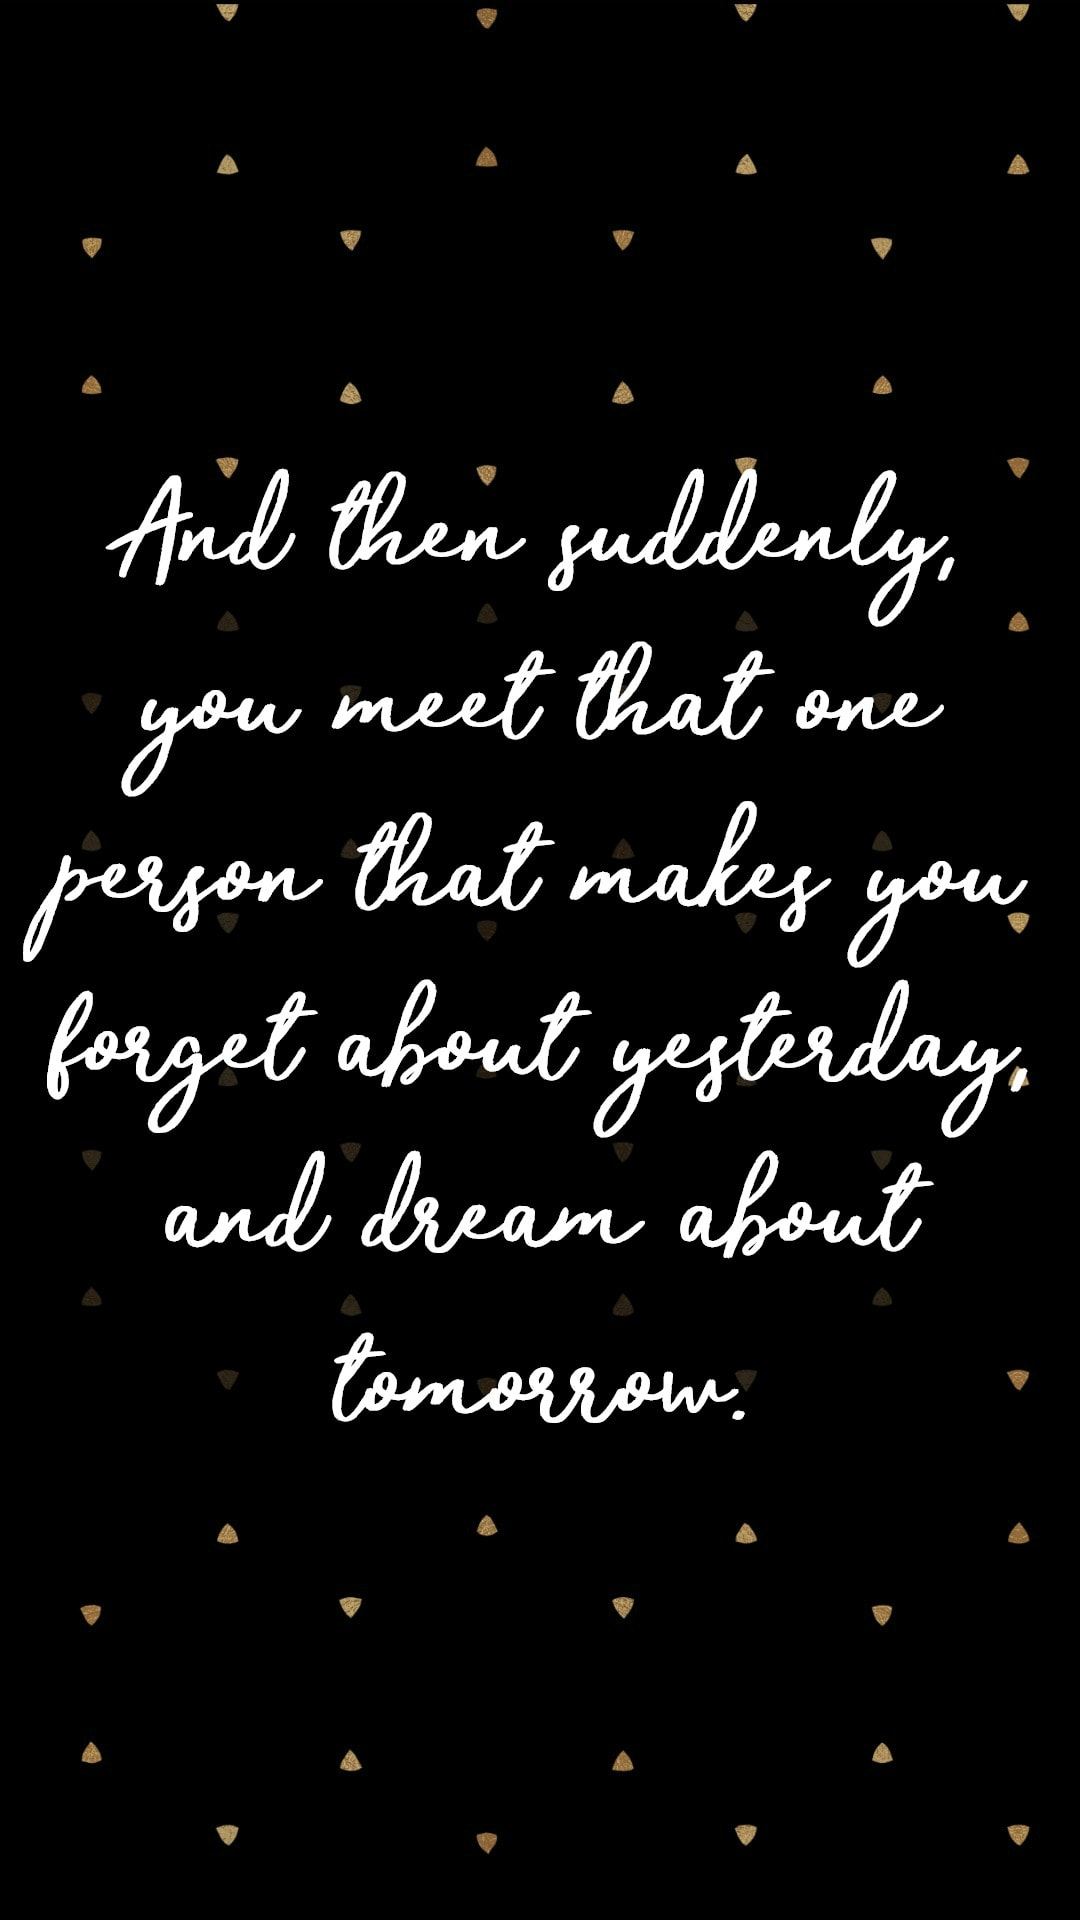 And then suddenly you meet that one person that makes you forget about yesterday, and dream about tomorrow